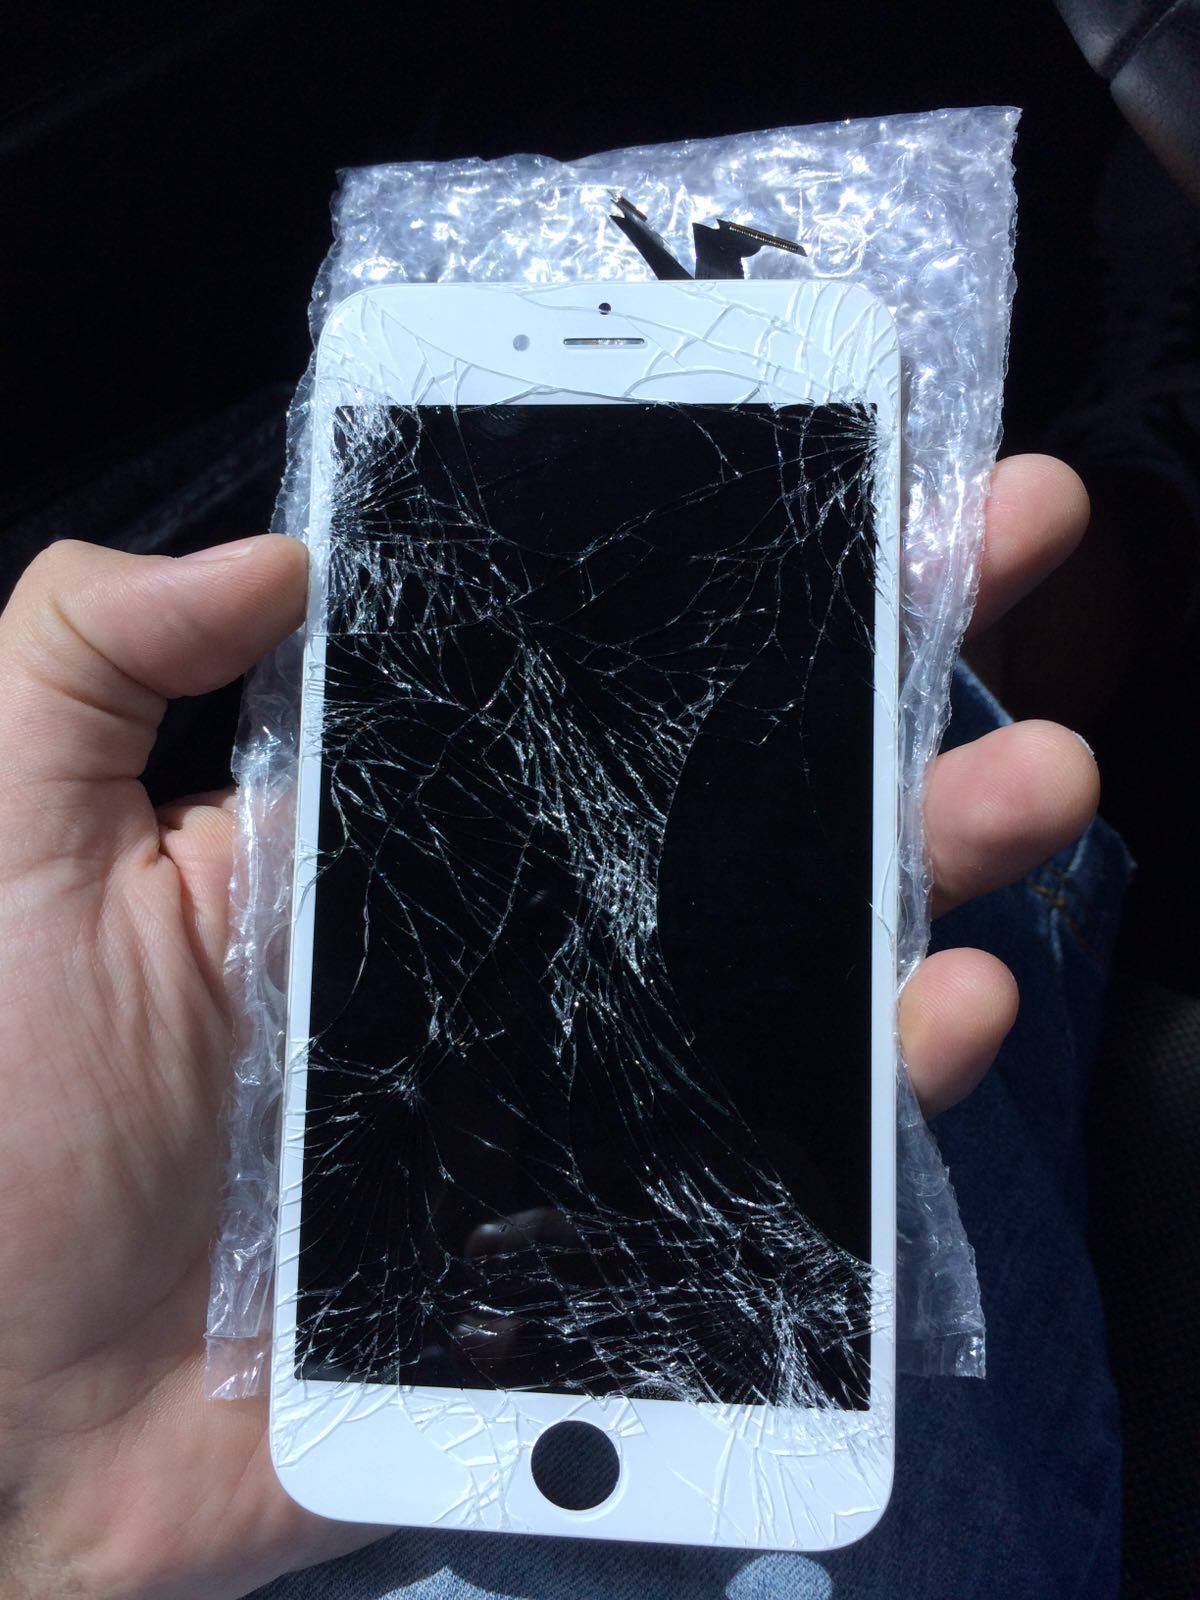 iPhone 6S Ruined = Life Over :(